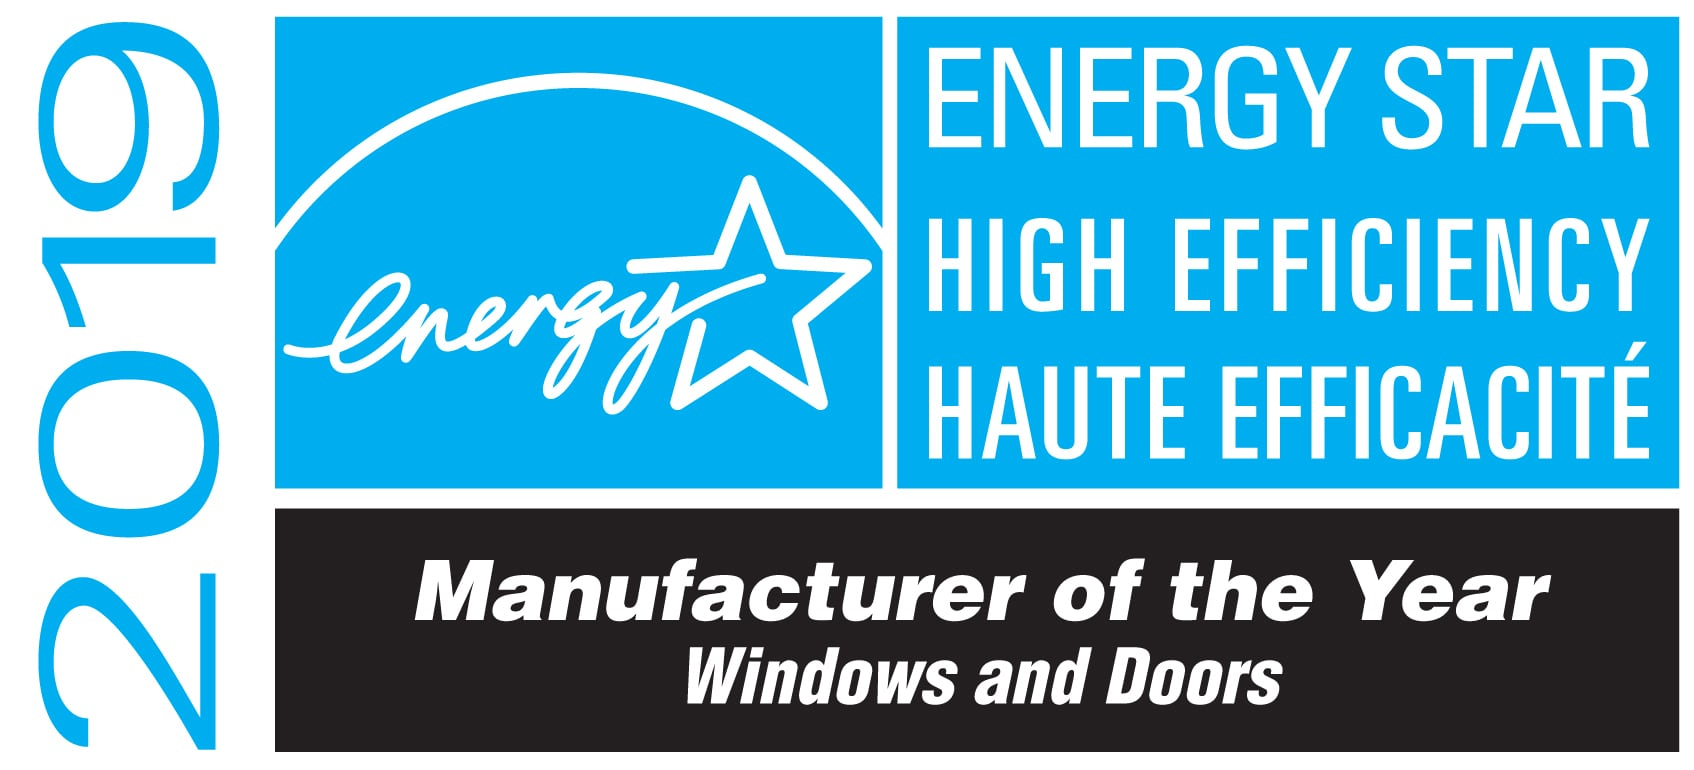 2019 Energy Badge Award